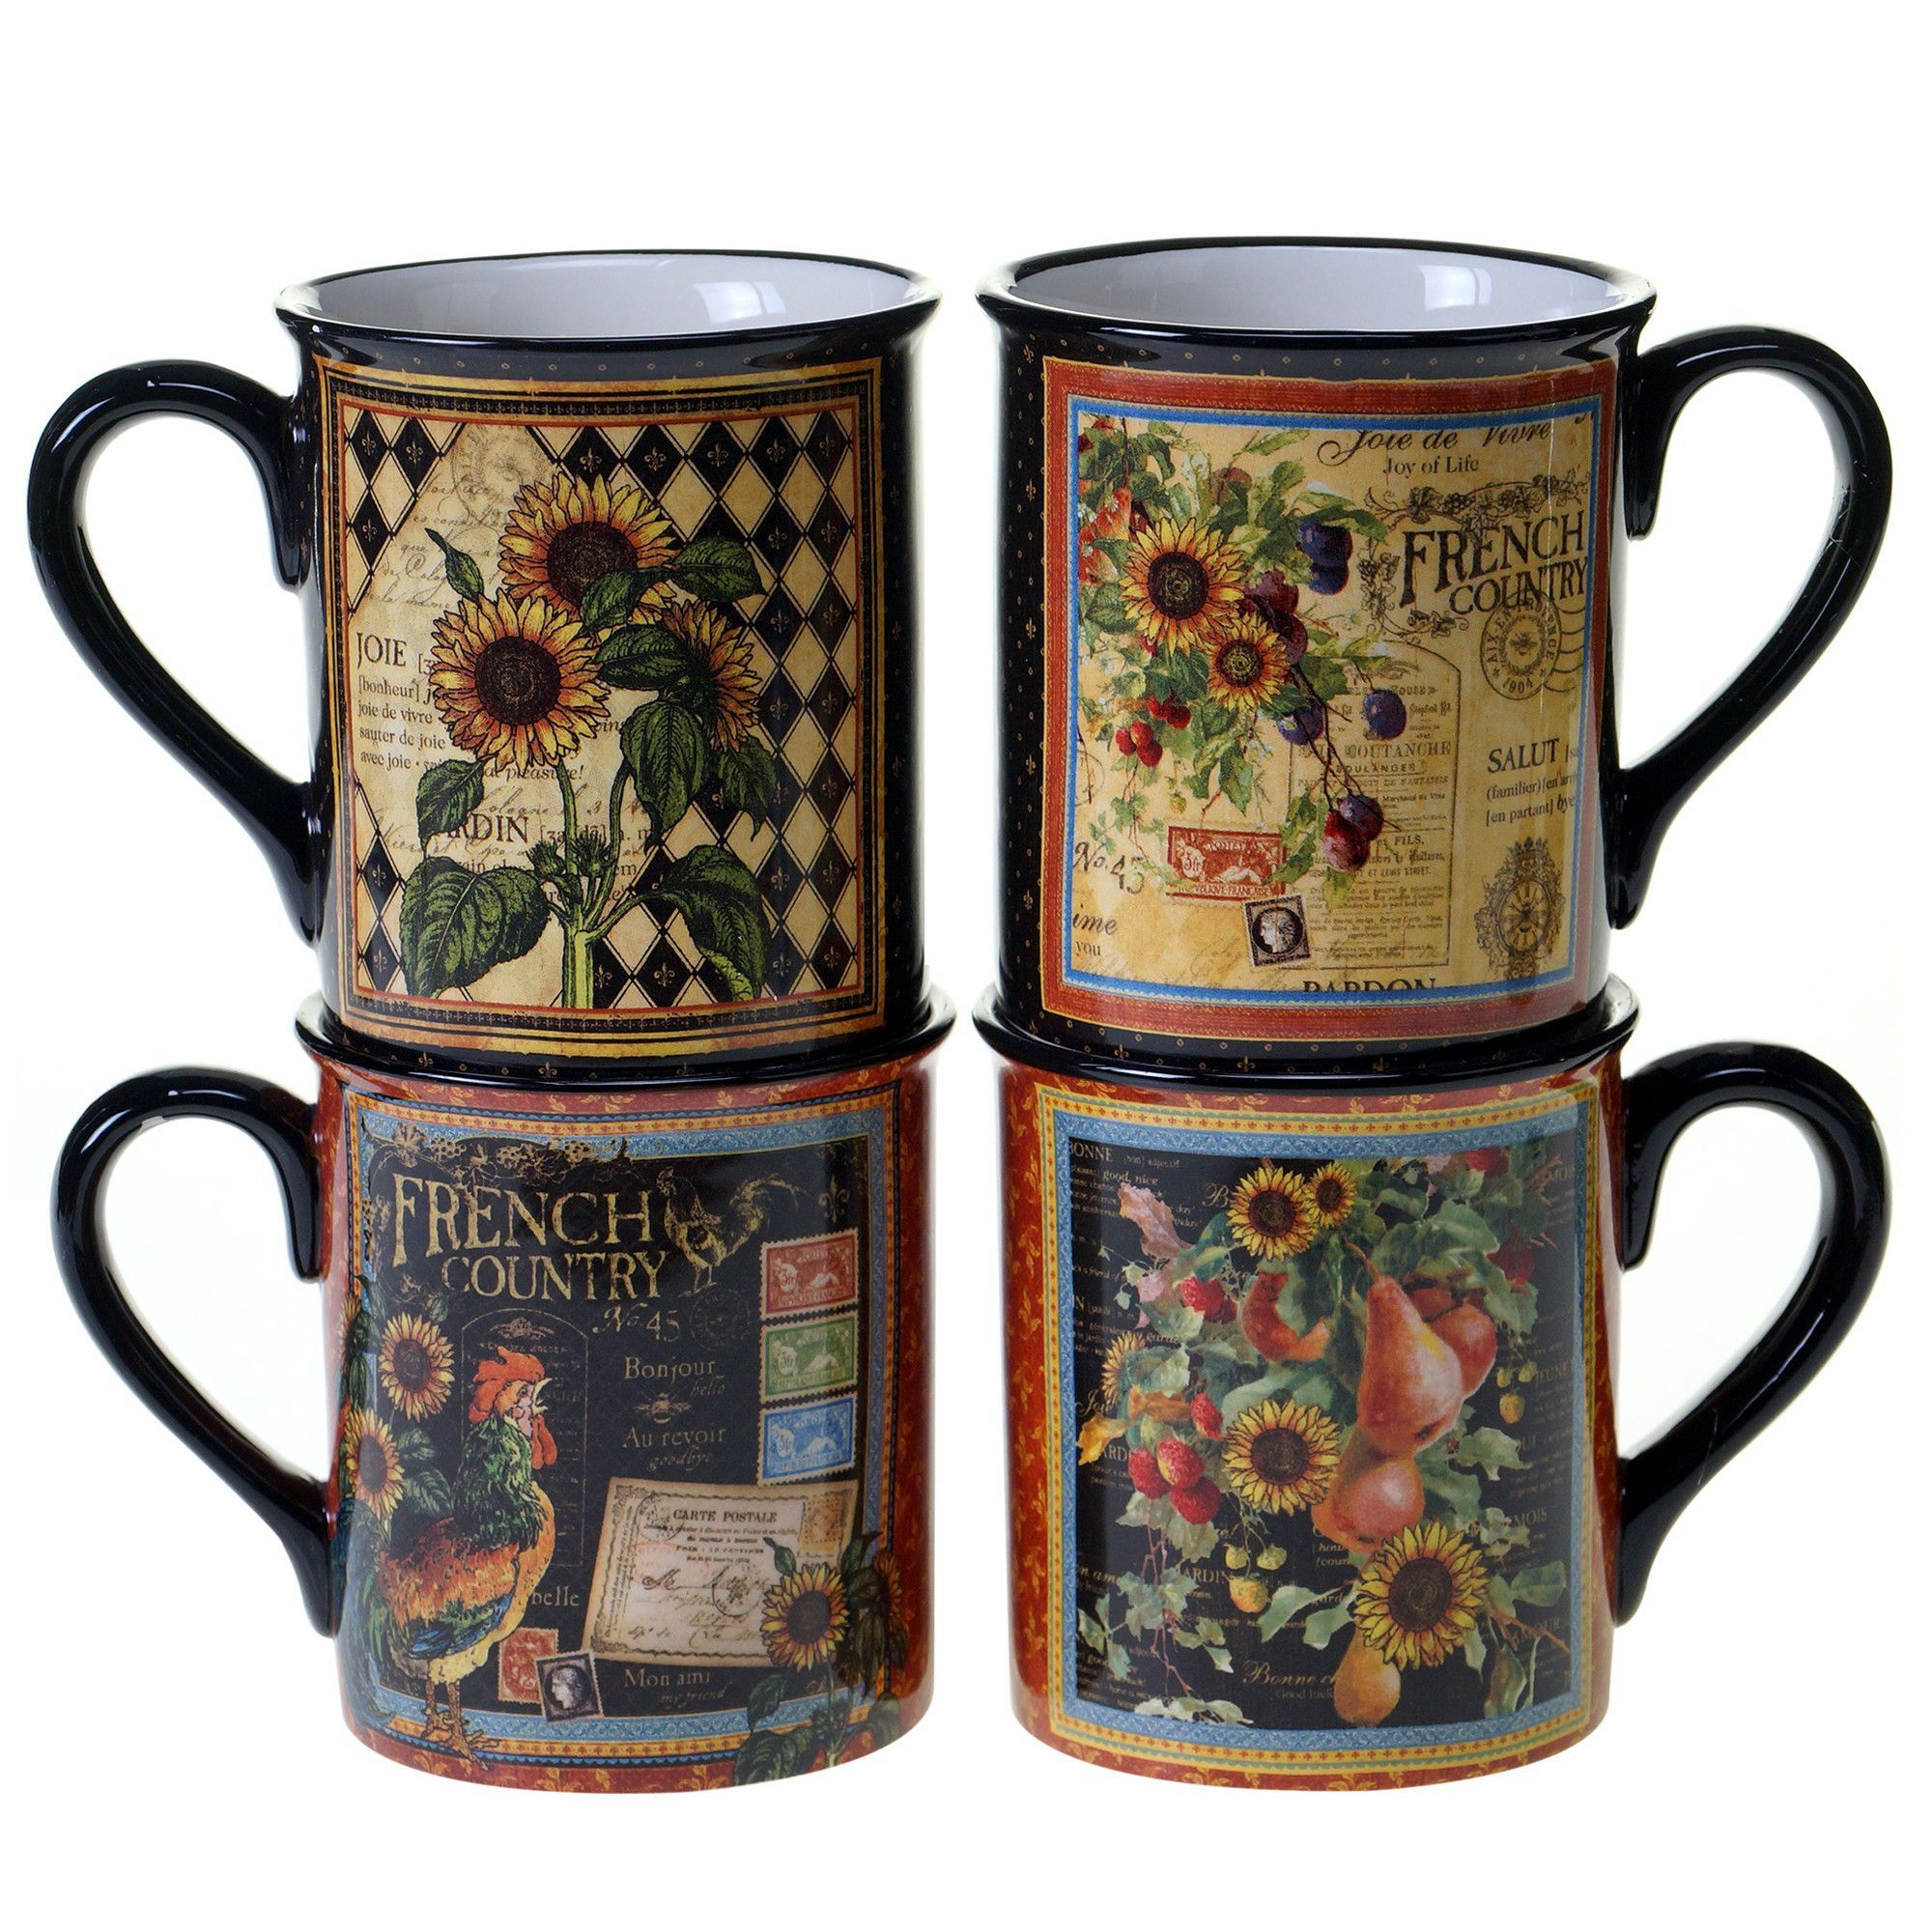 French Country 4 Piece 16 oz. Mug Set Mugs, Mugs set